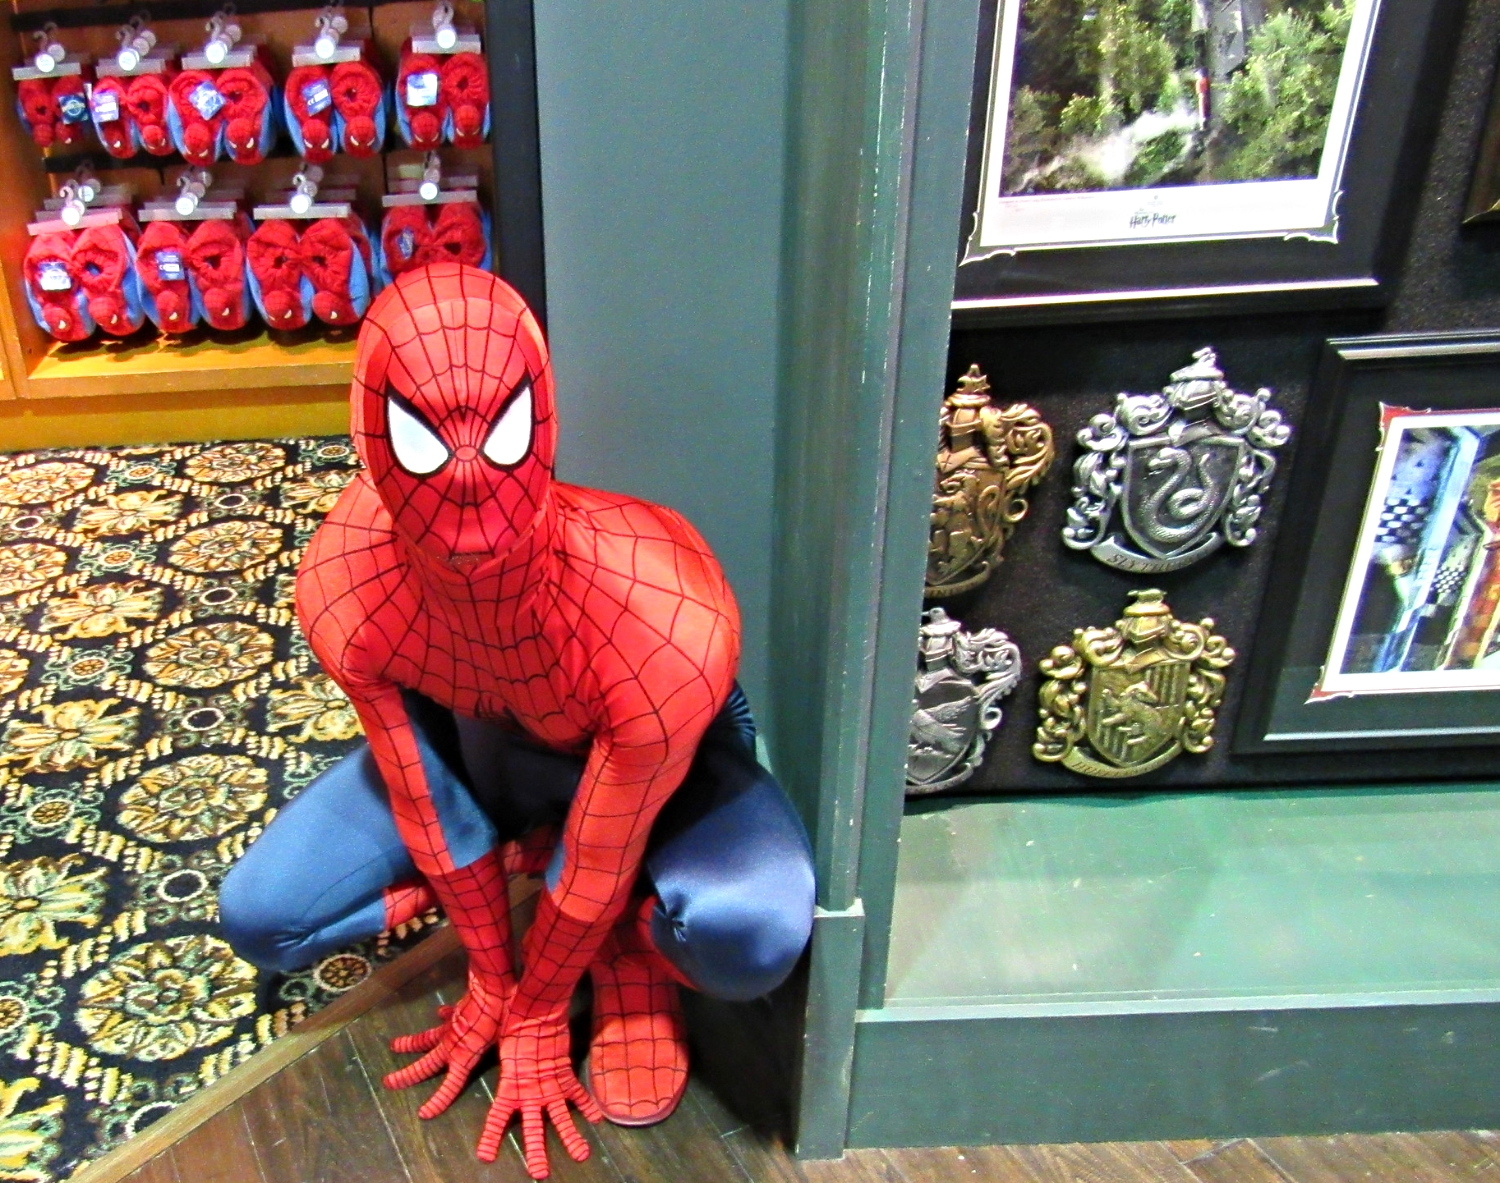 Spider-Man crouching in the Islands of Adventure Trading Company in Port of Entry